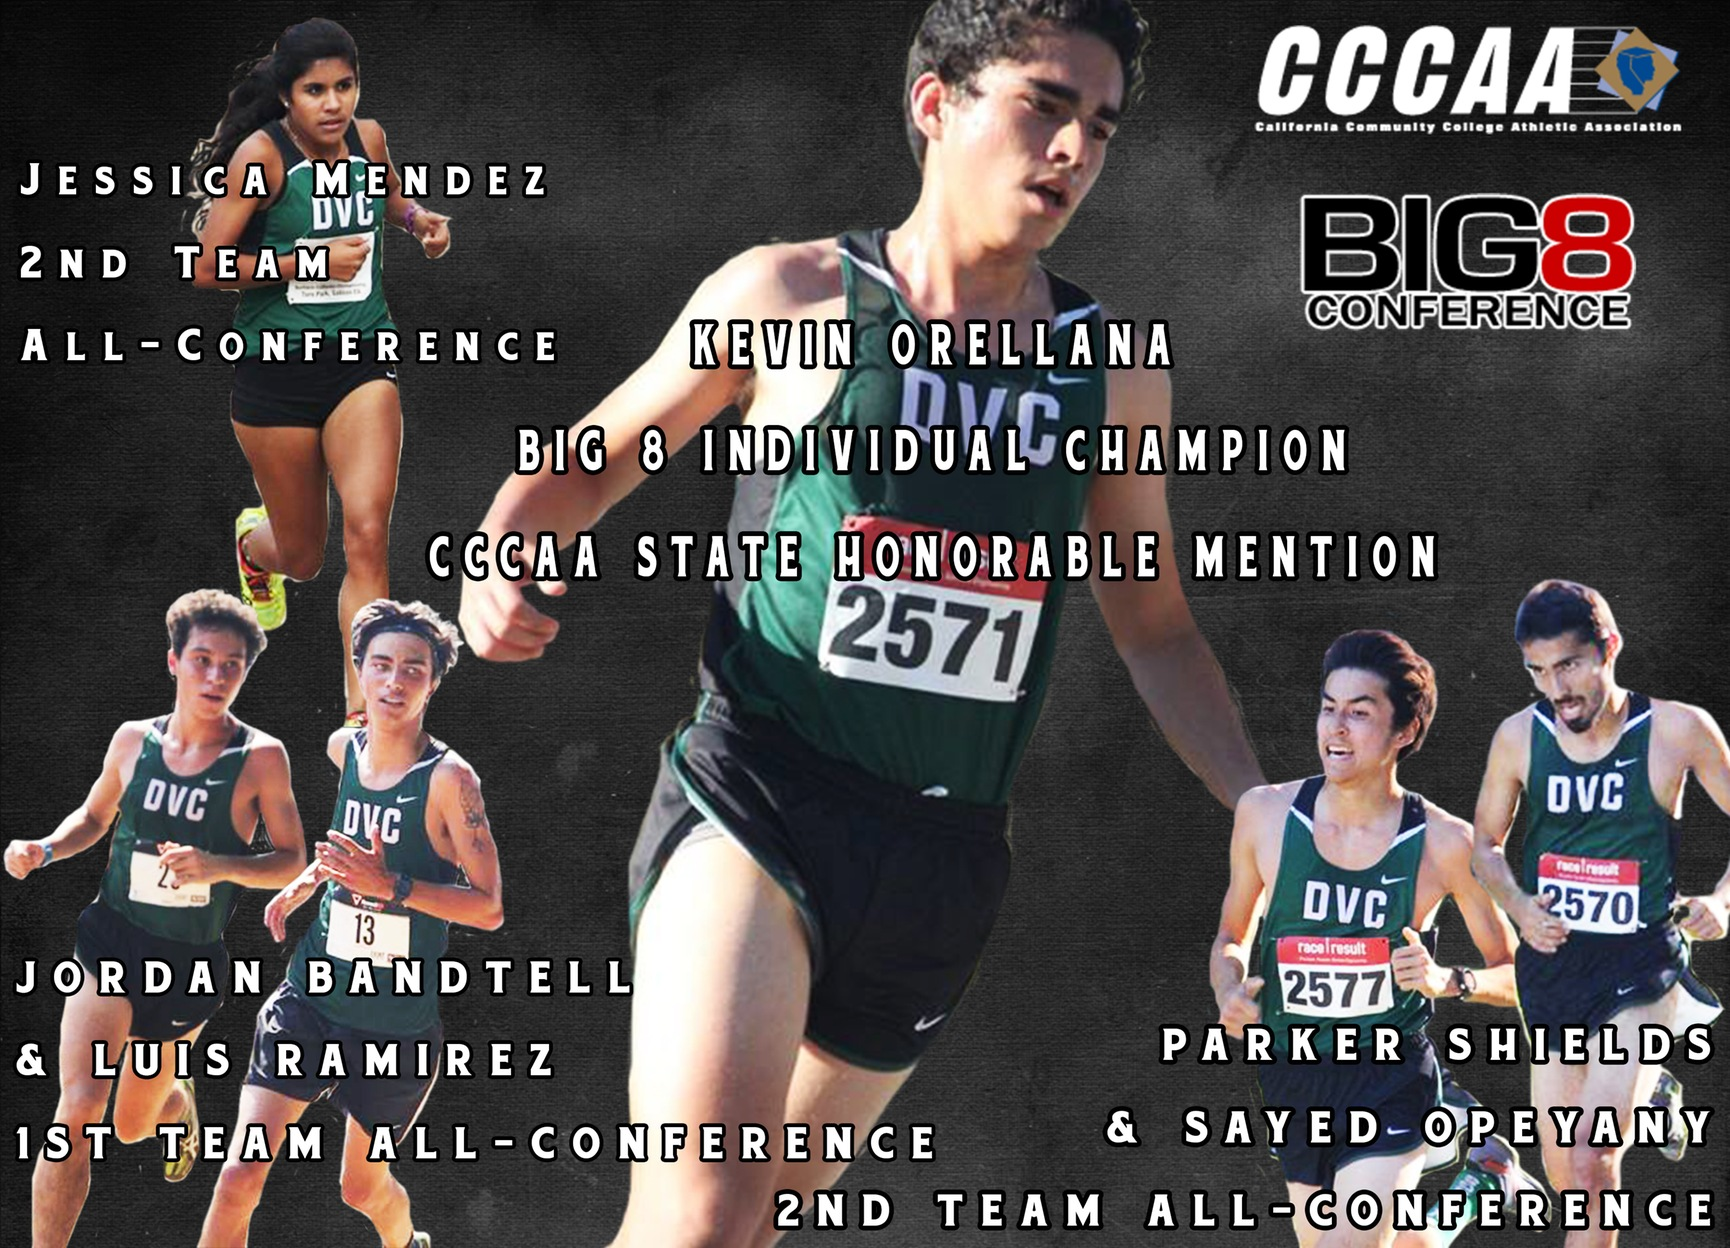 Six XC Runners notch All-Conference Honors